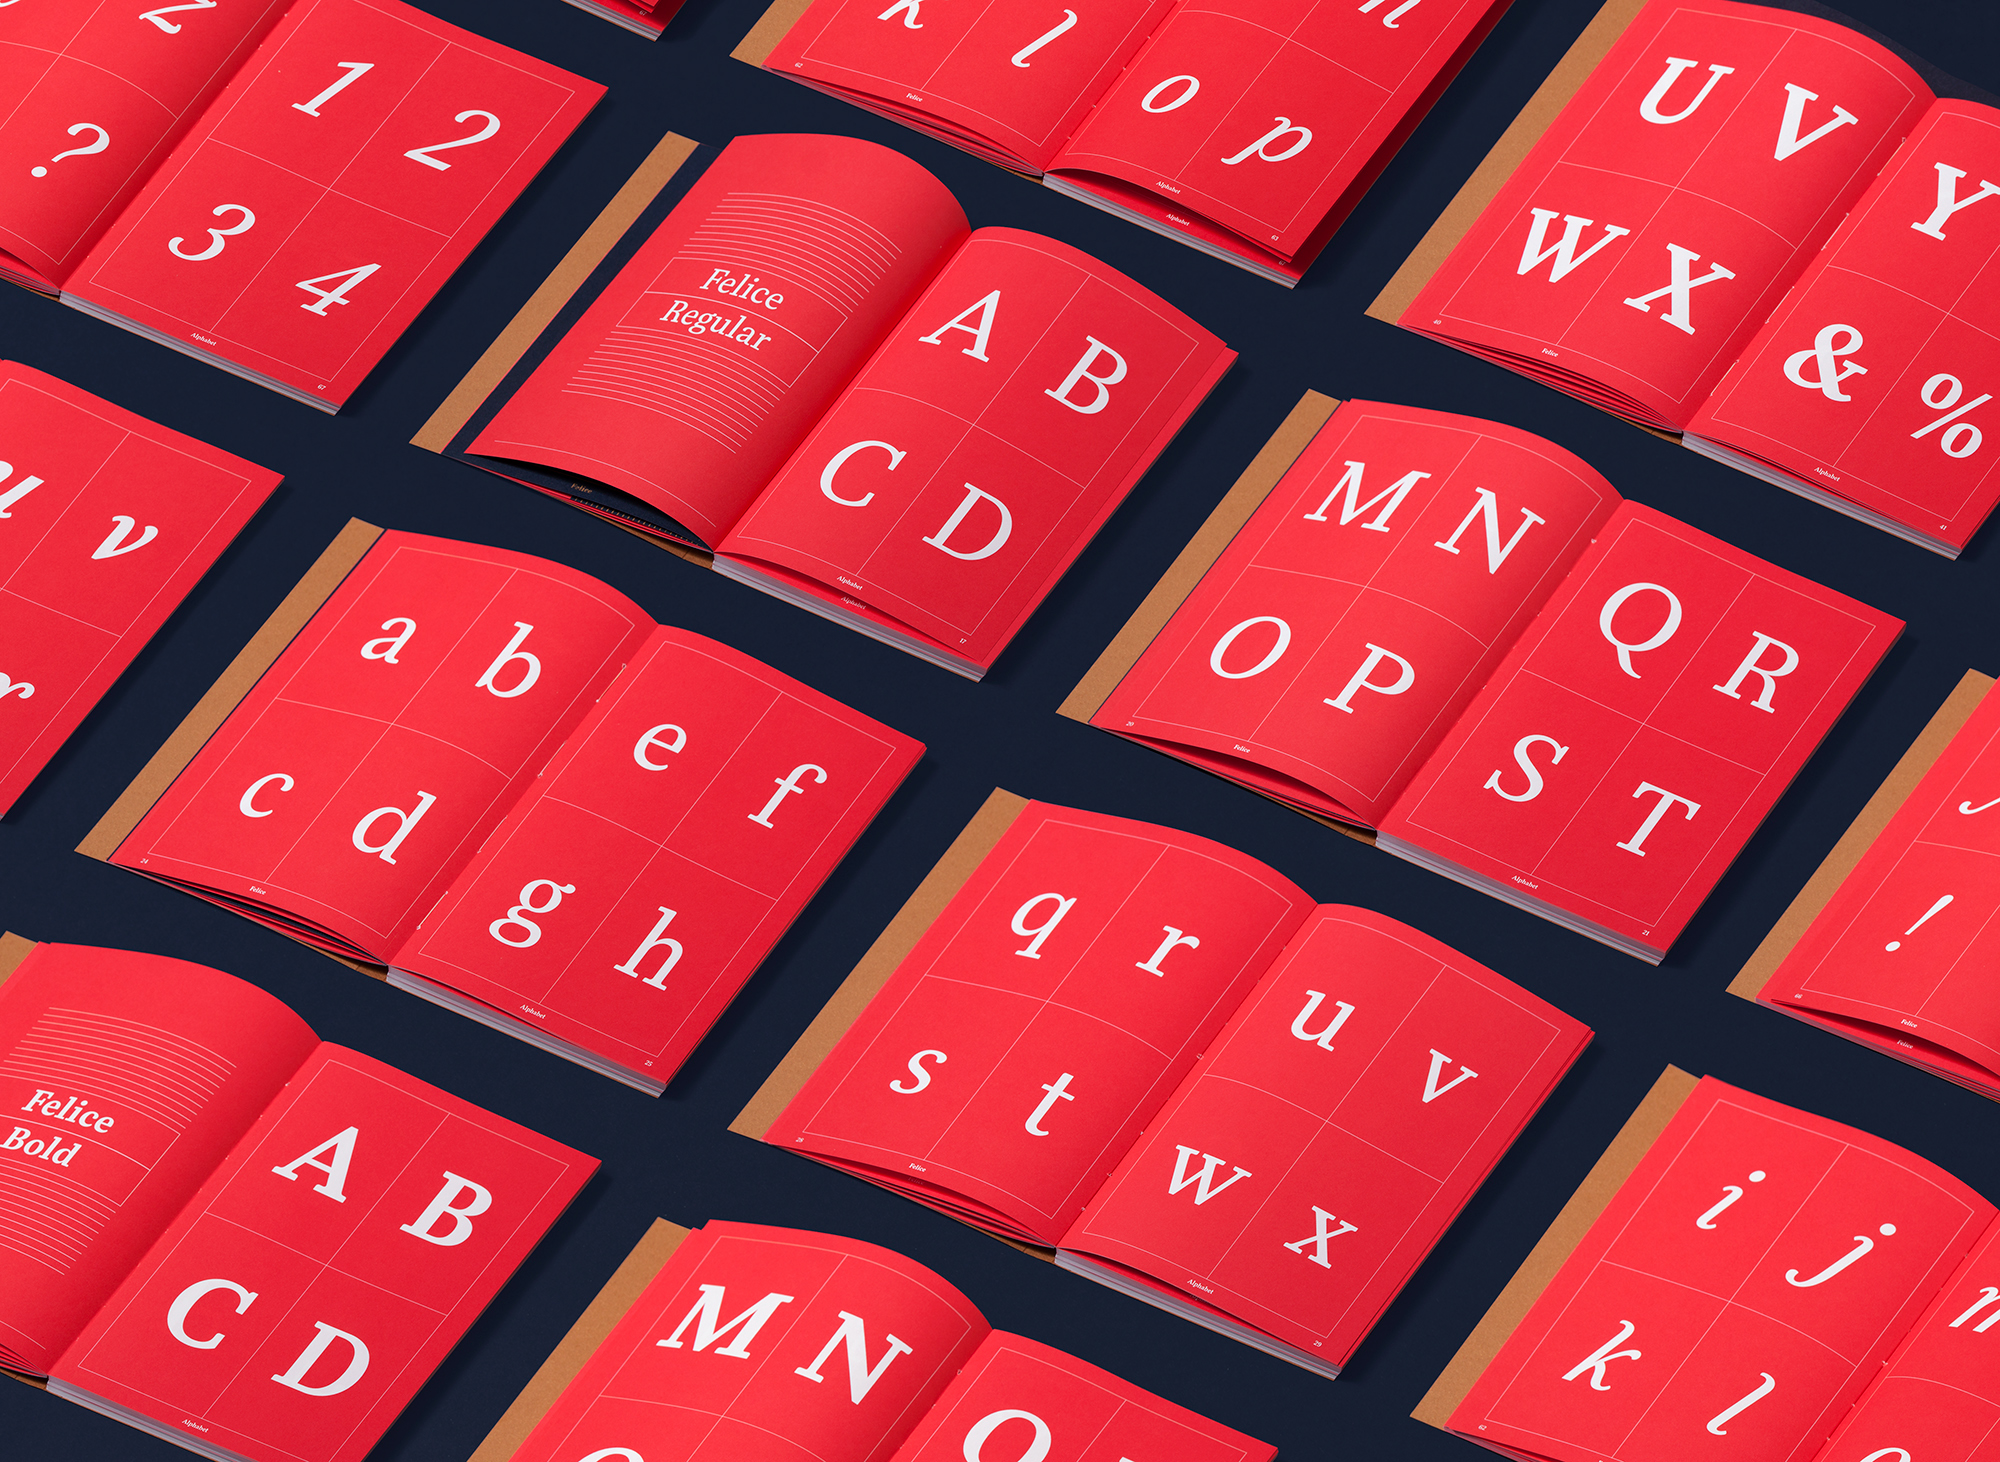 Editorial Design: Typeface Felice the Book